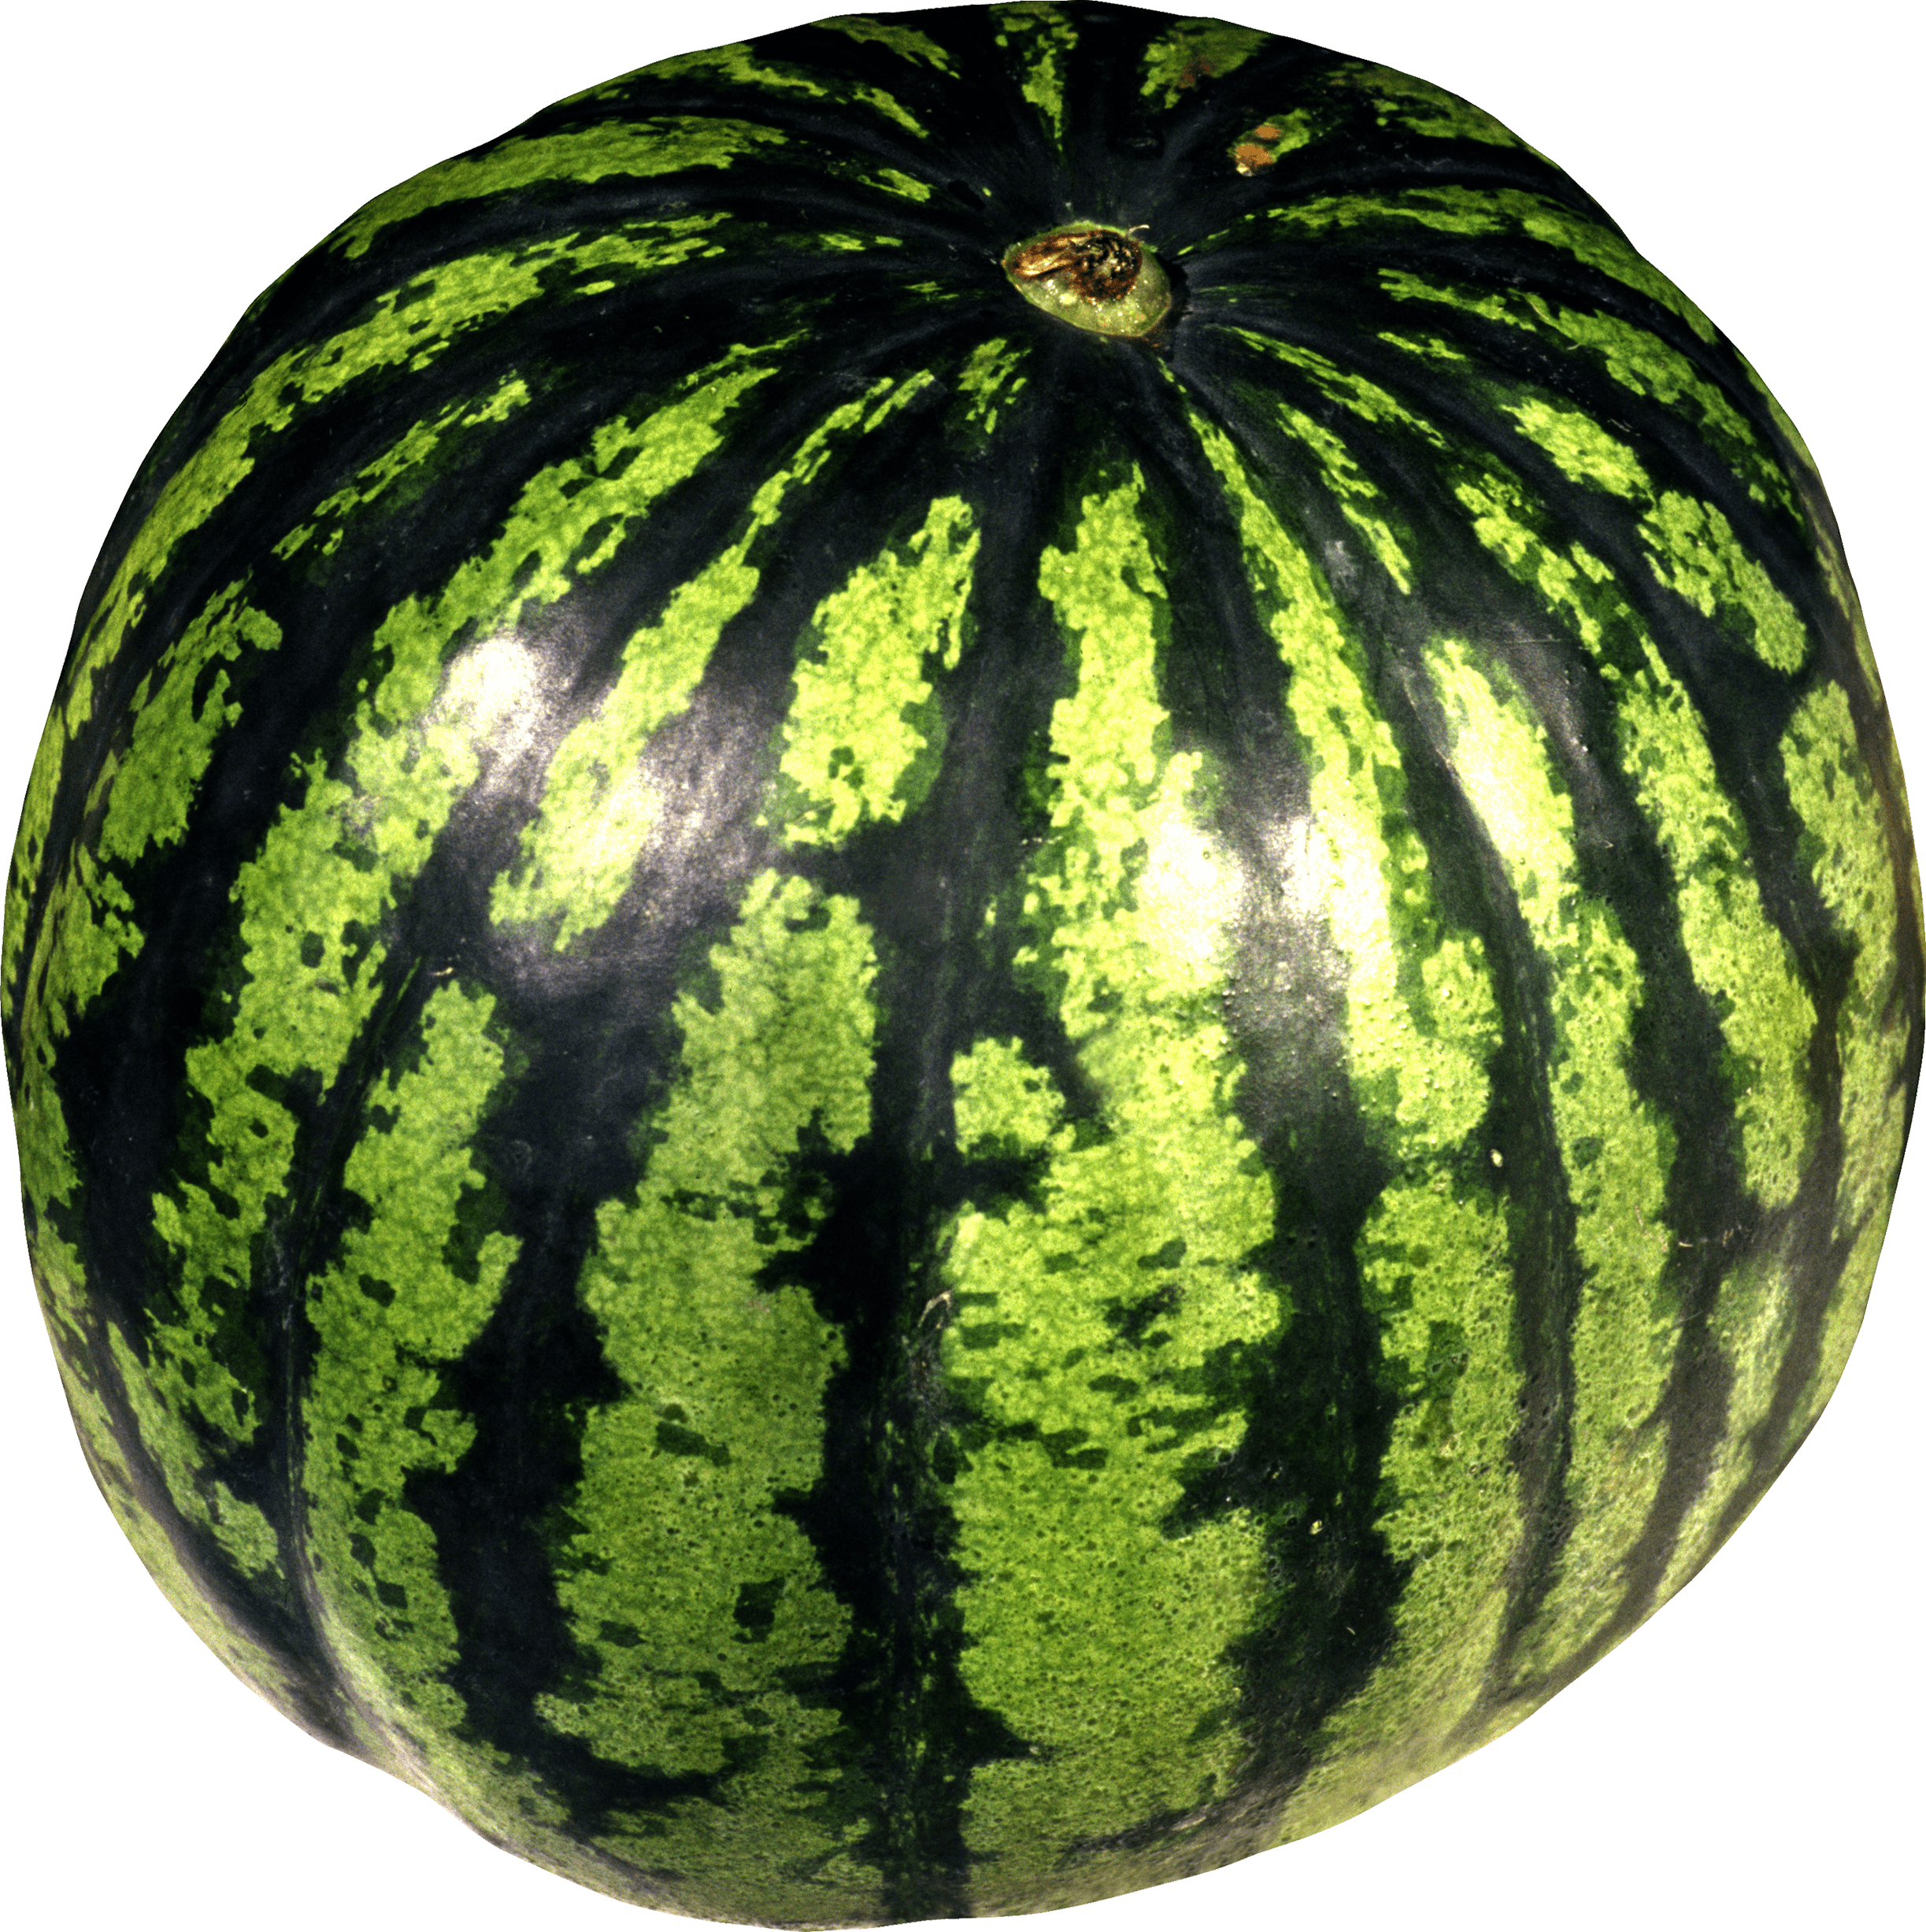 download watermelon png image png image pngimg #17850